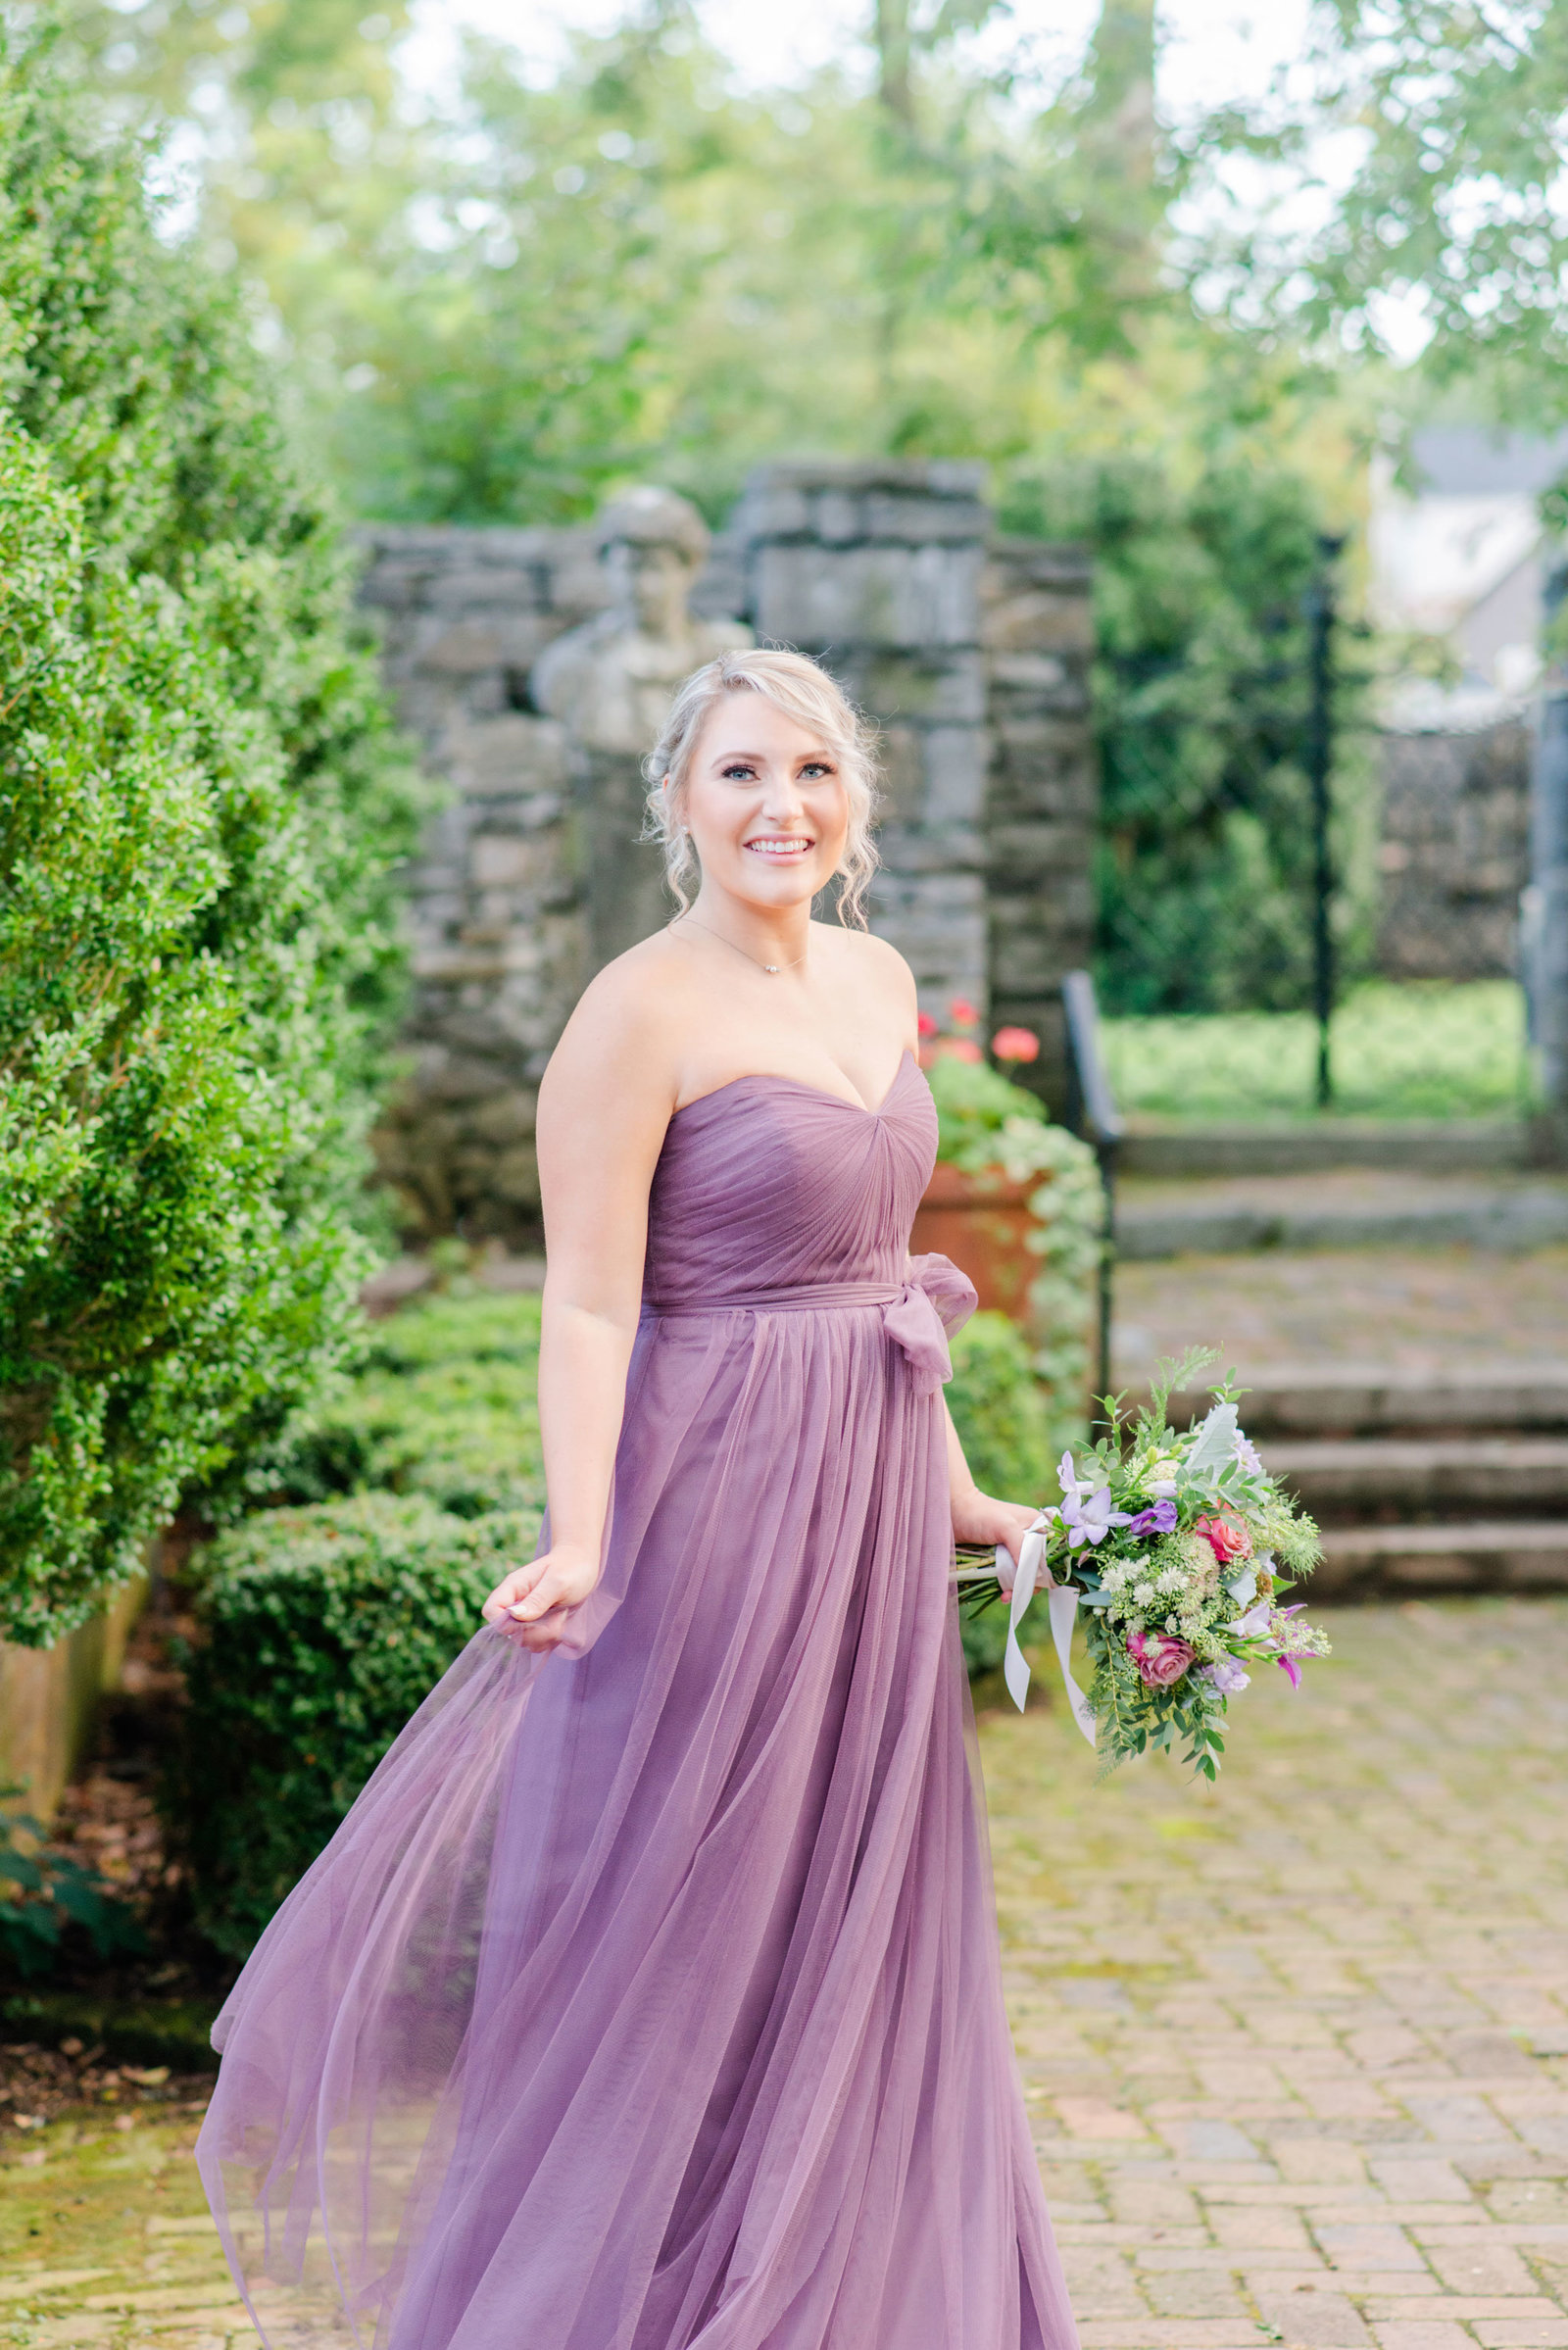 Blonde female in long purple bridesmaid dress